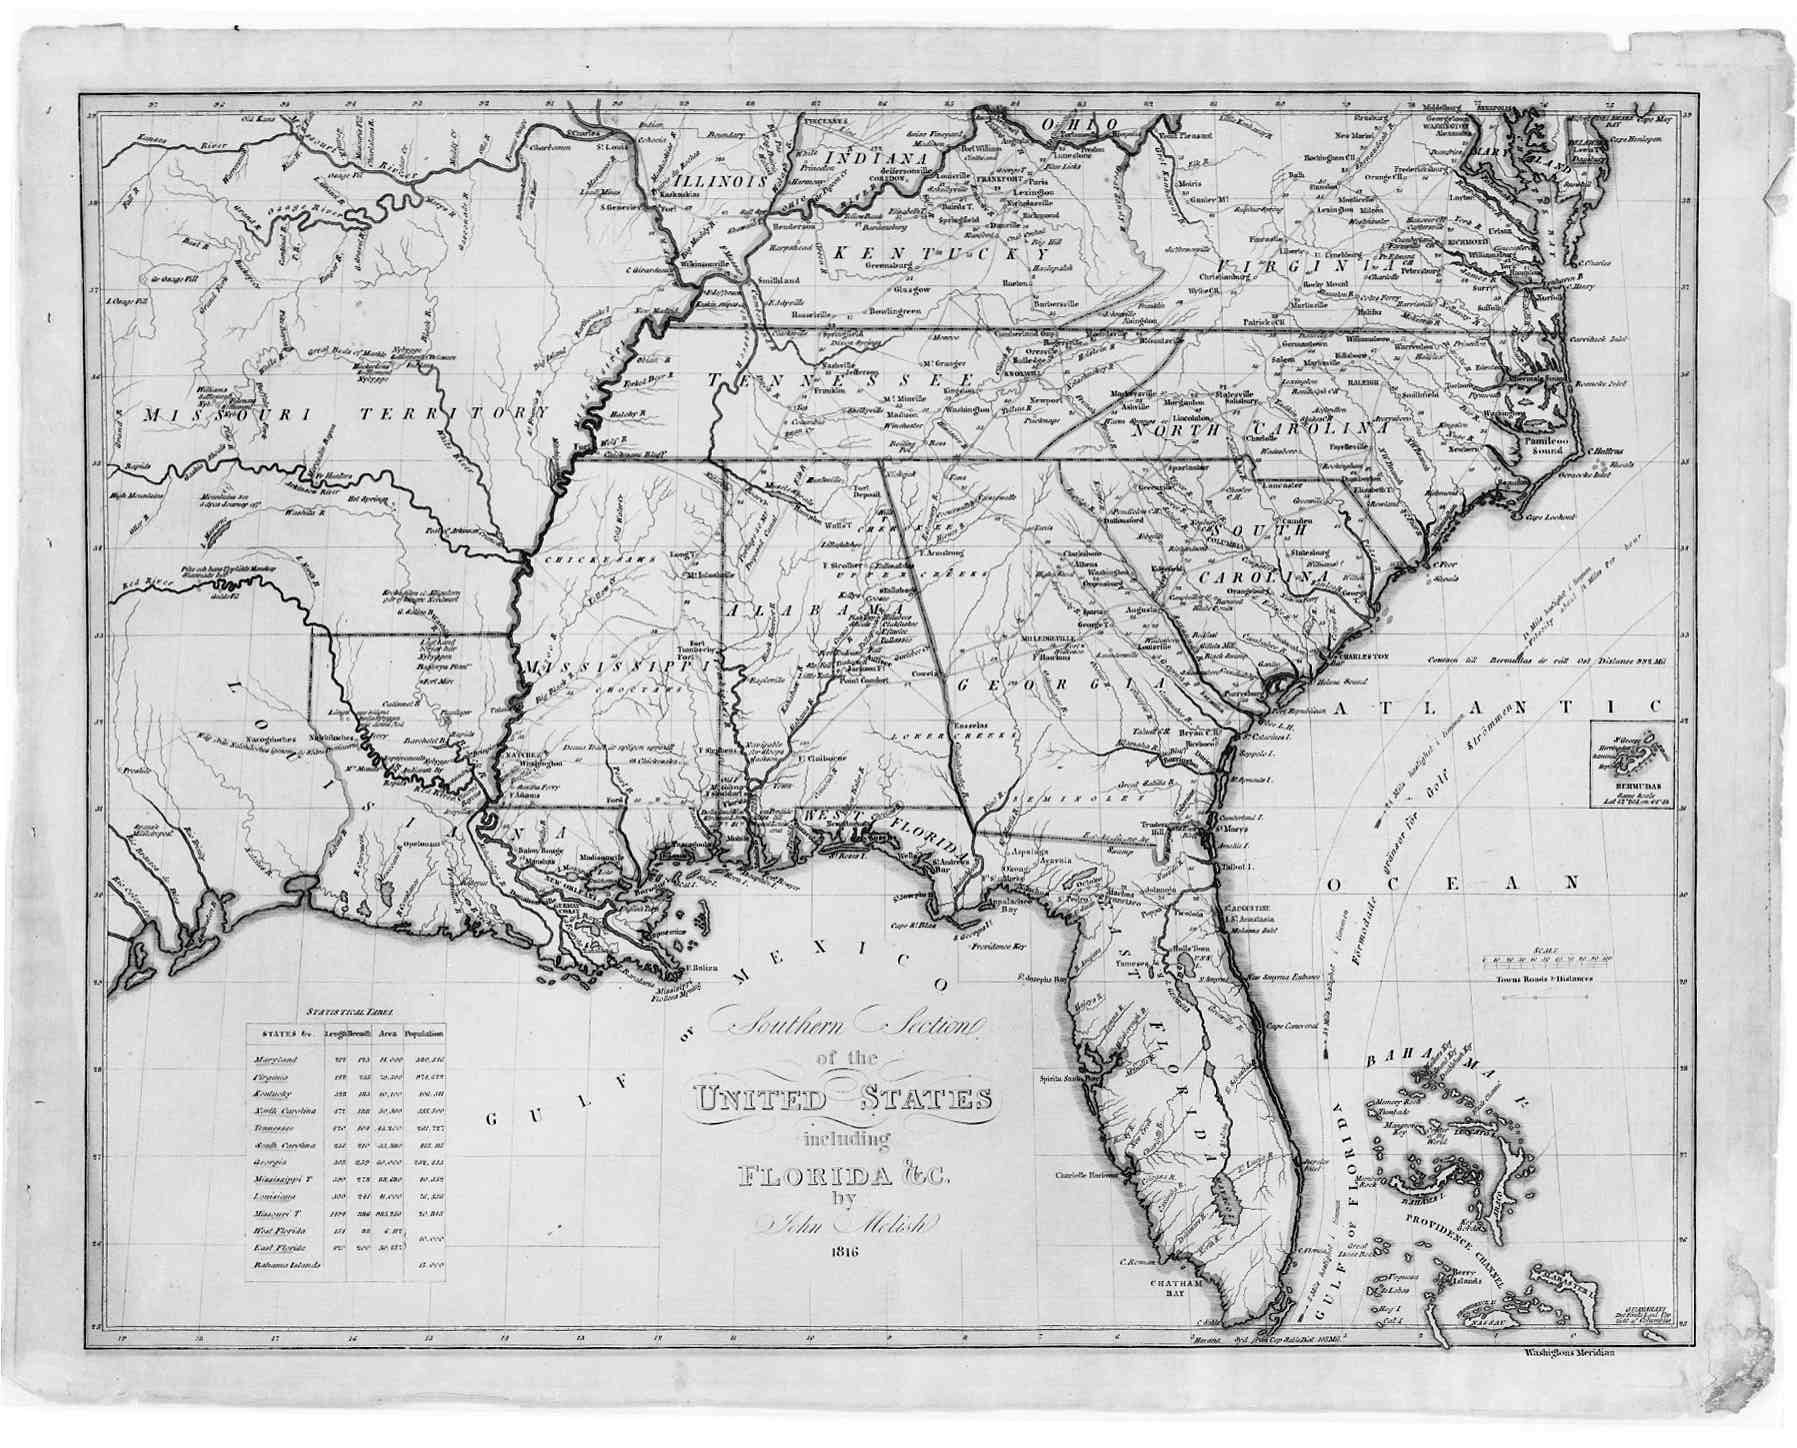 Digital History - Map of southern us